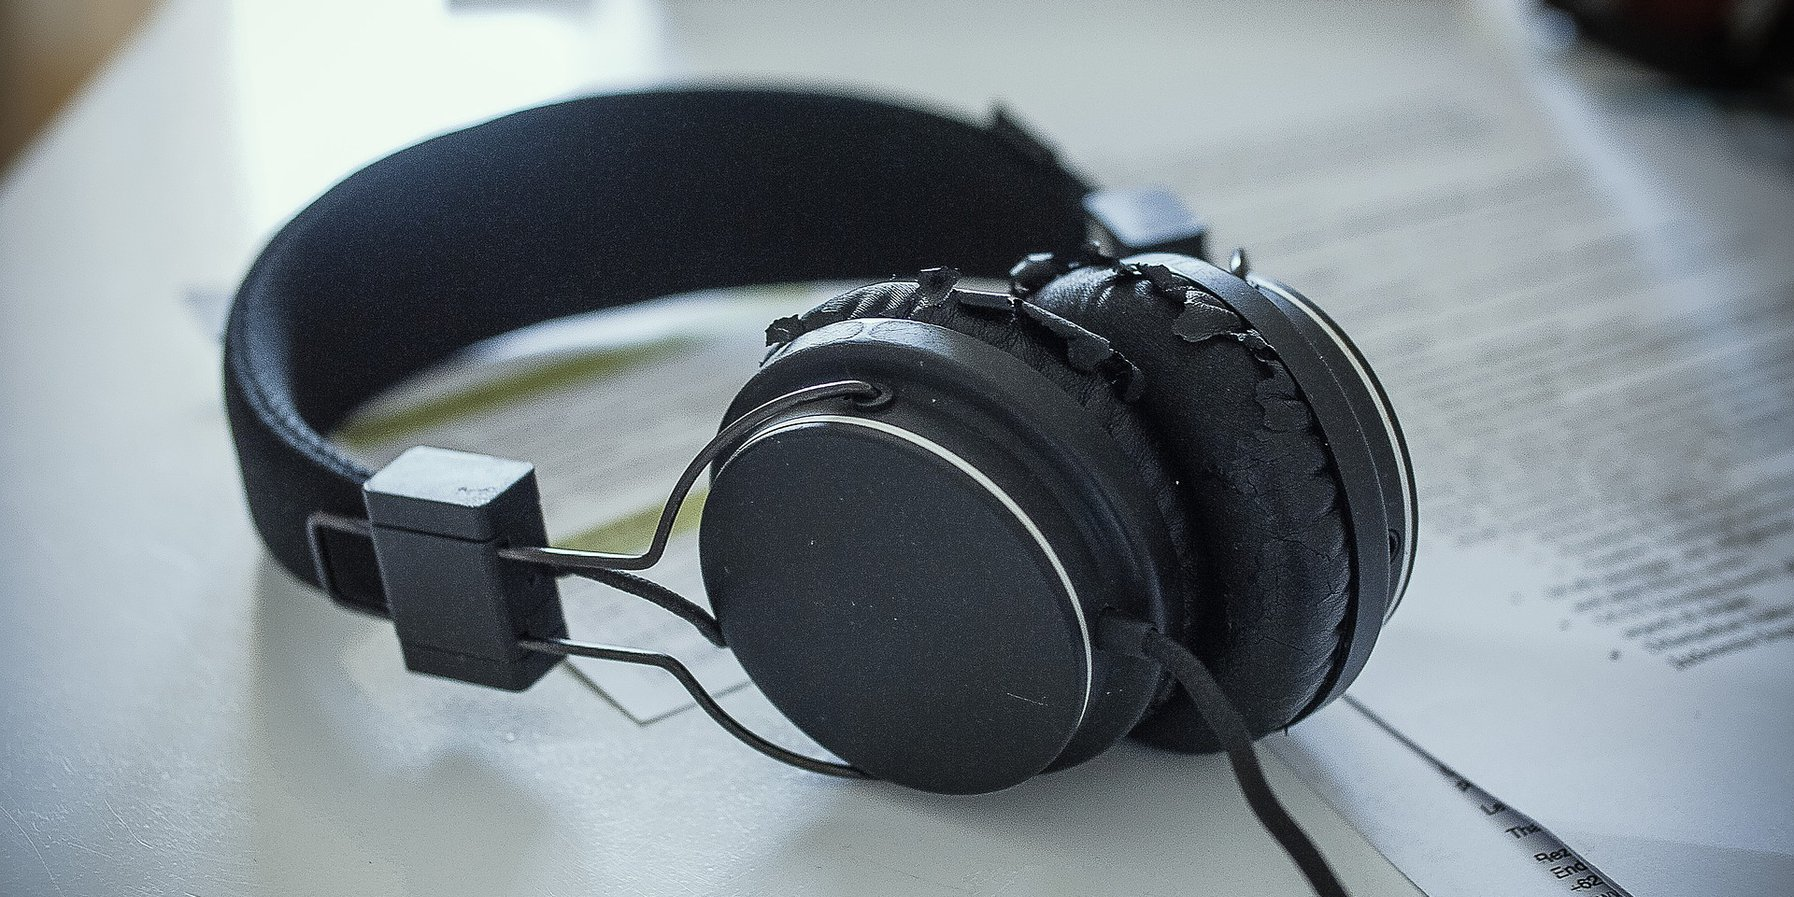 Listening to music can increase a person's staying power.